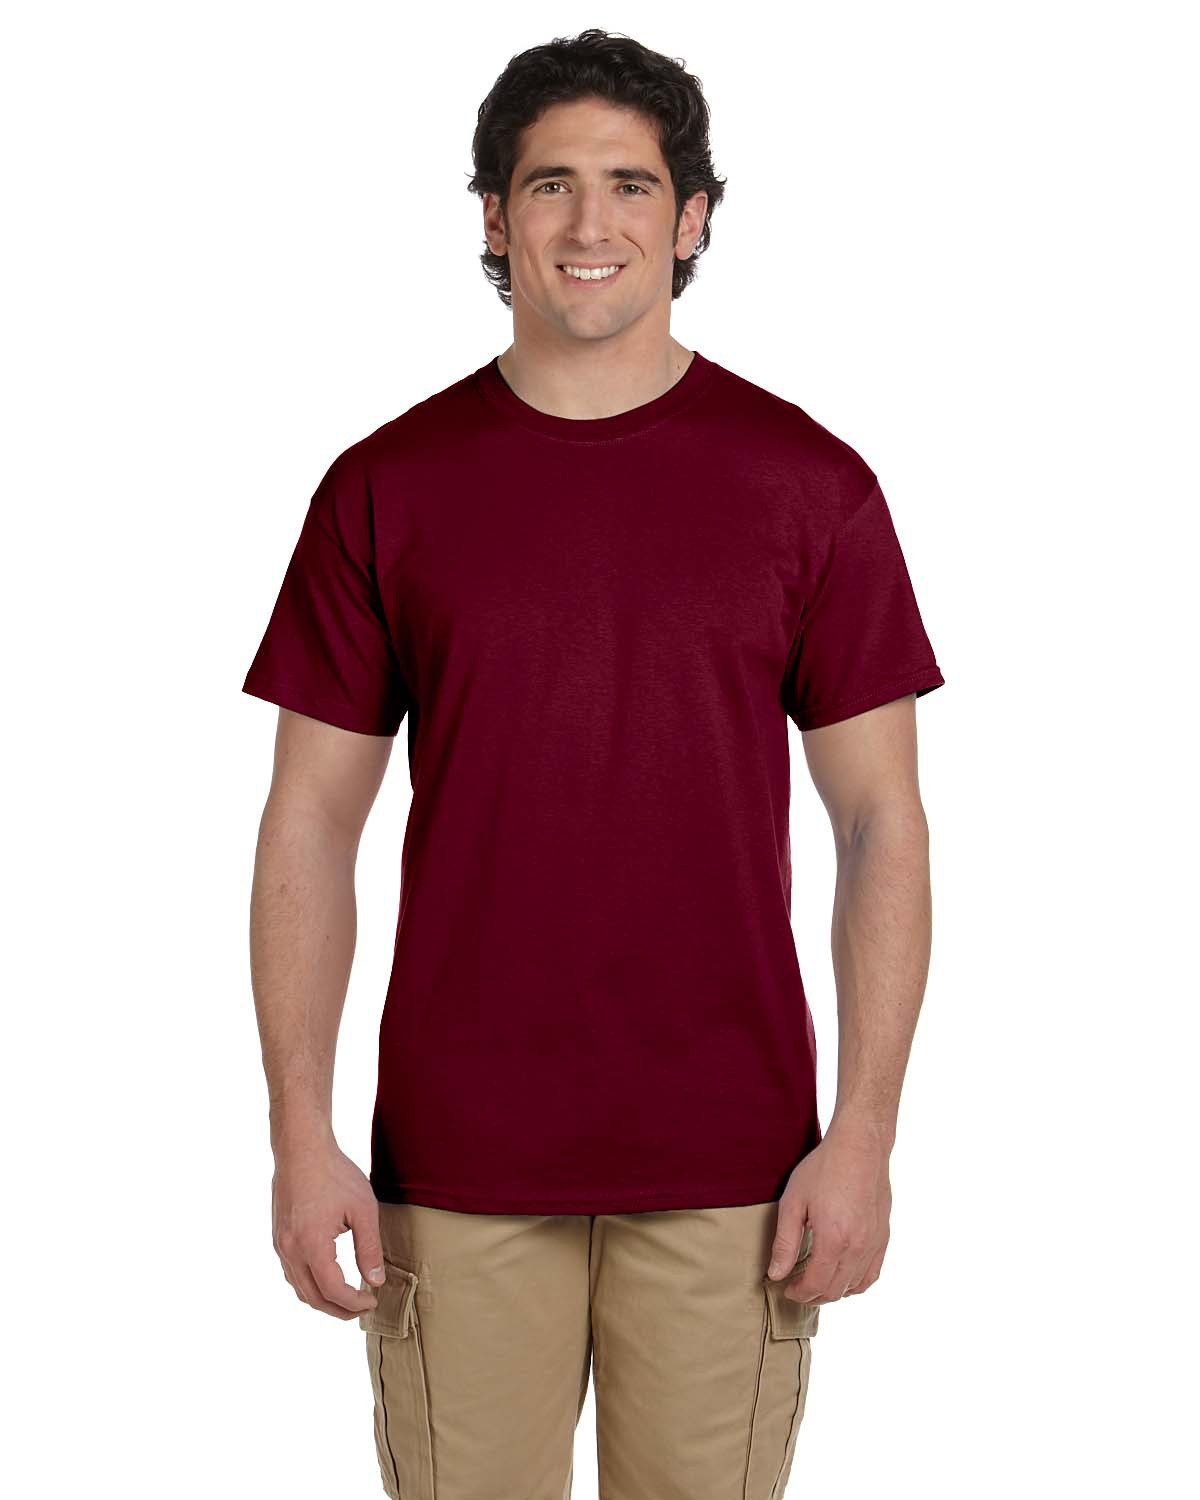 Fruit of the Loom Adult HD Cotton™ T-Shirt MAROON